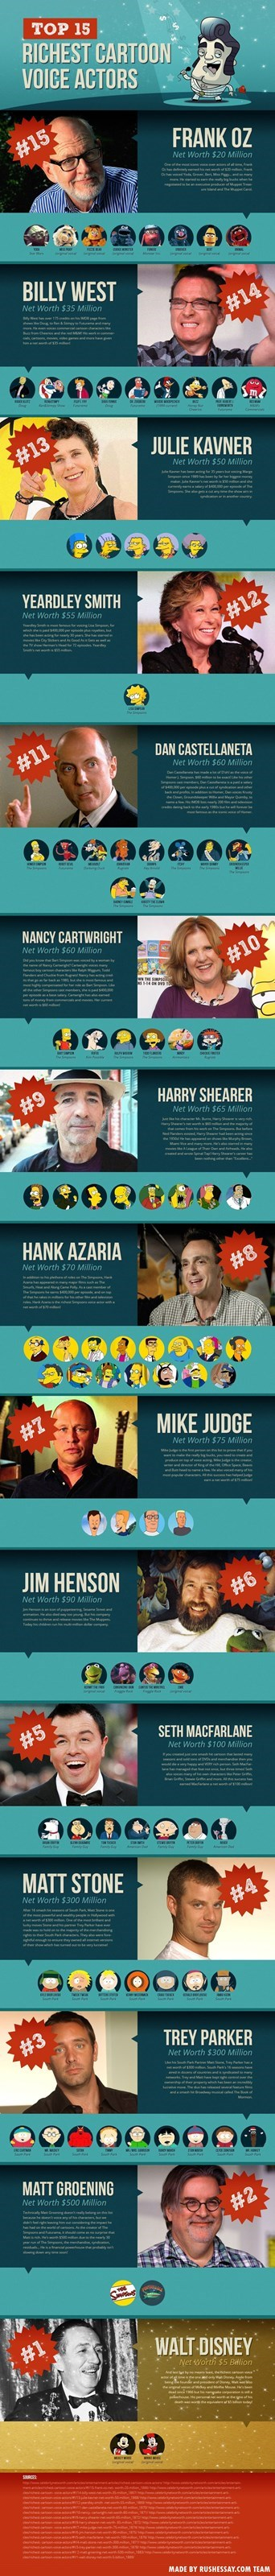 disney muppets South Park voice acting simpsons futurama